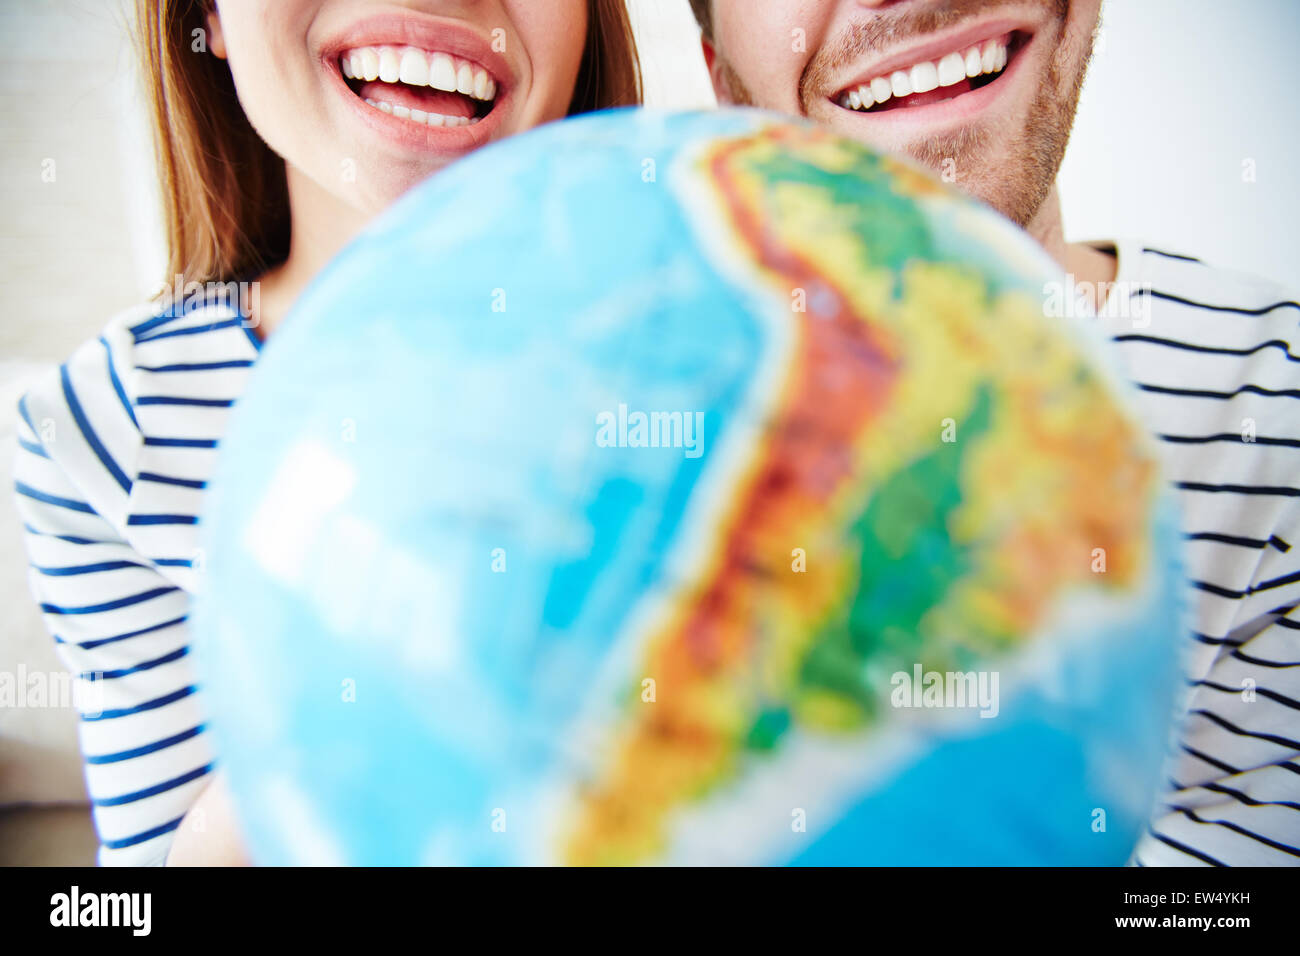 Close-up of toothy smiles of couple and globe - Stock Image